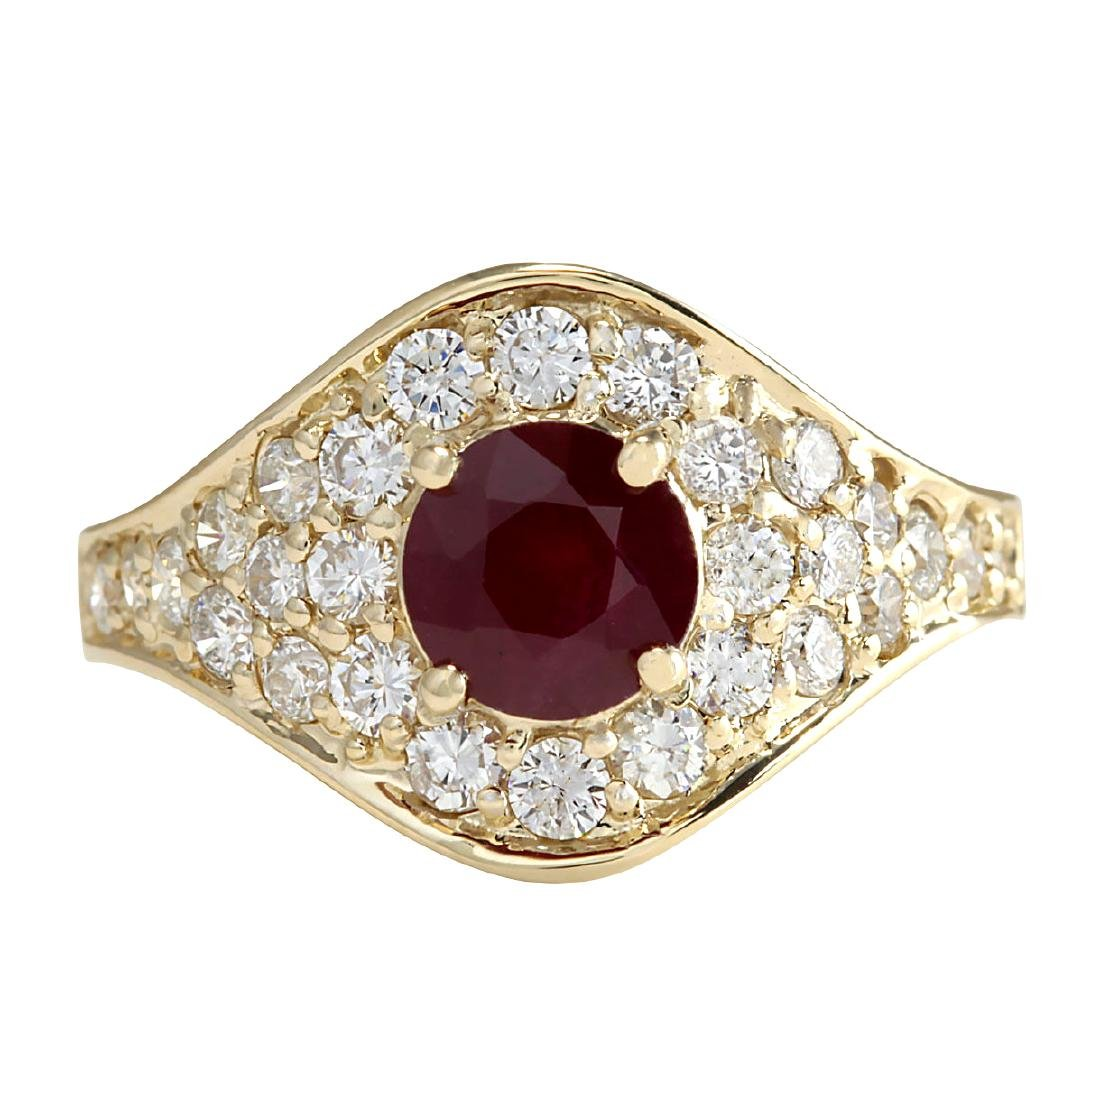 2.32Ct Natural Ruby And Diamond Ring In18K Yellow Gold